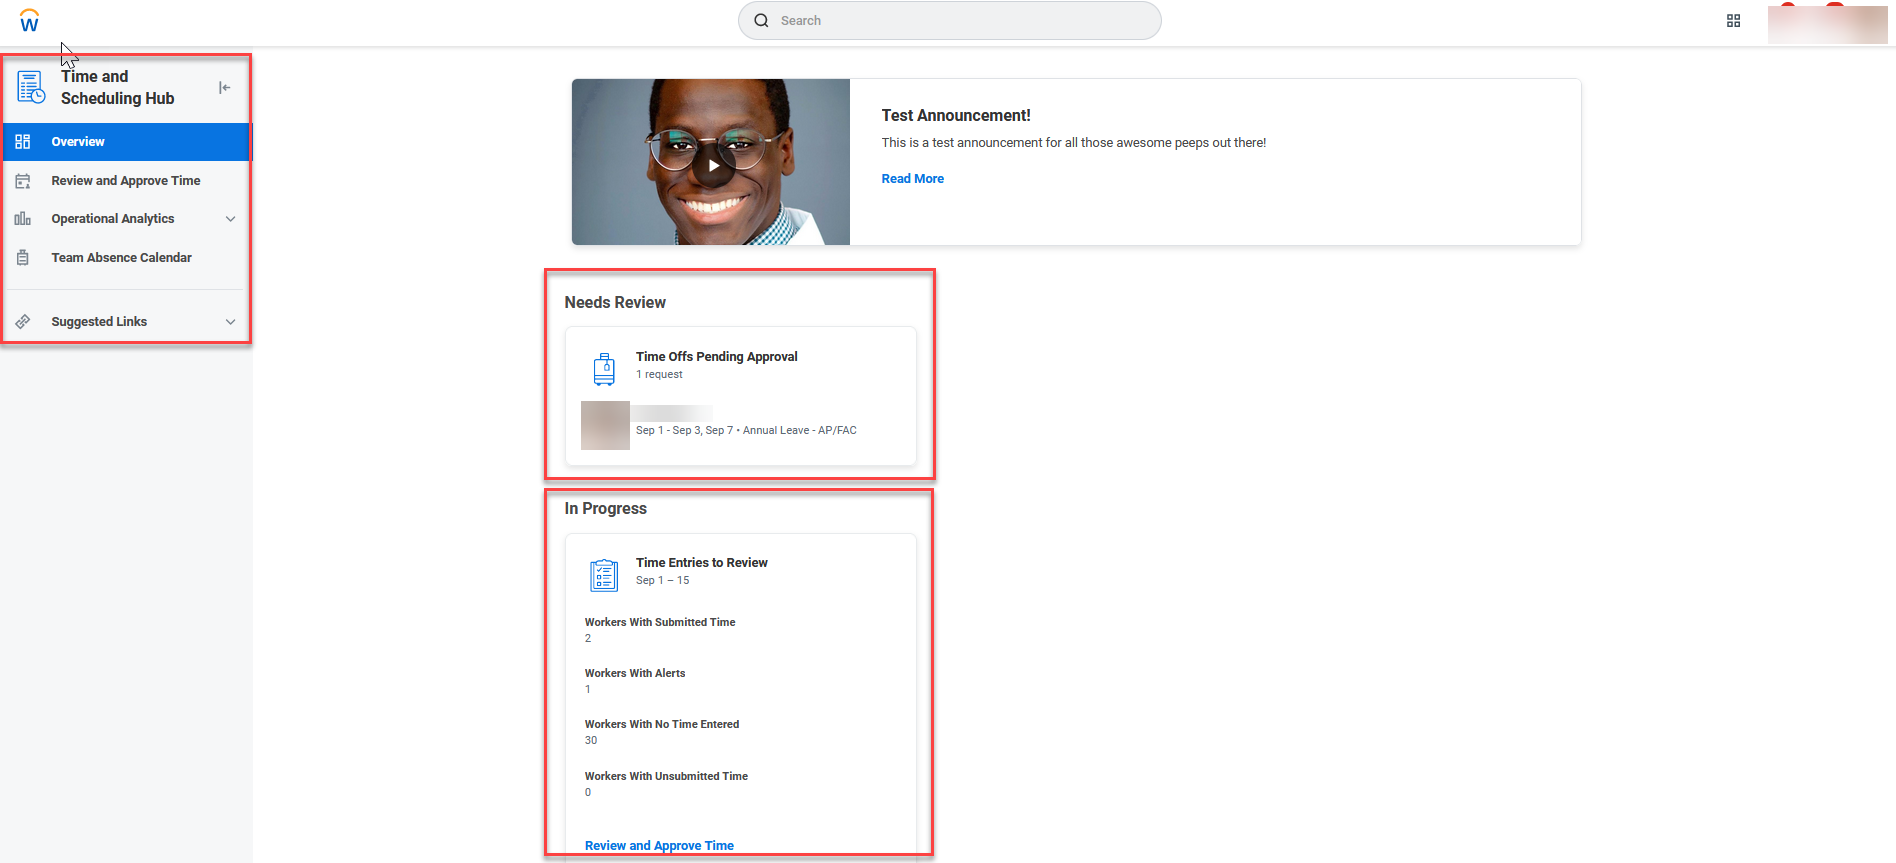 A screenshot of the new Time and Scheduling Hub for managers.